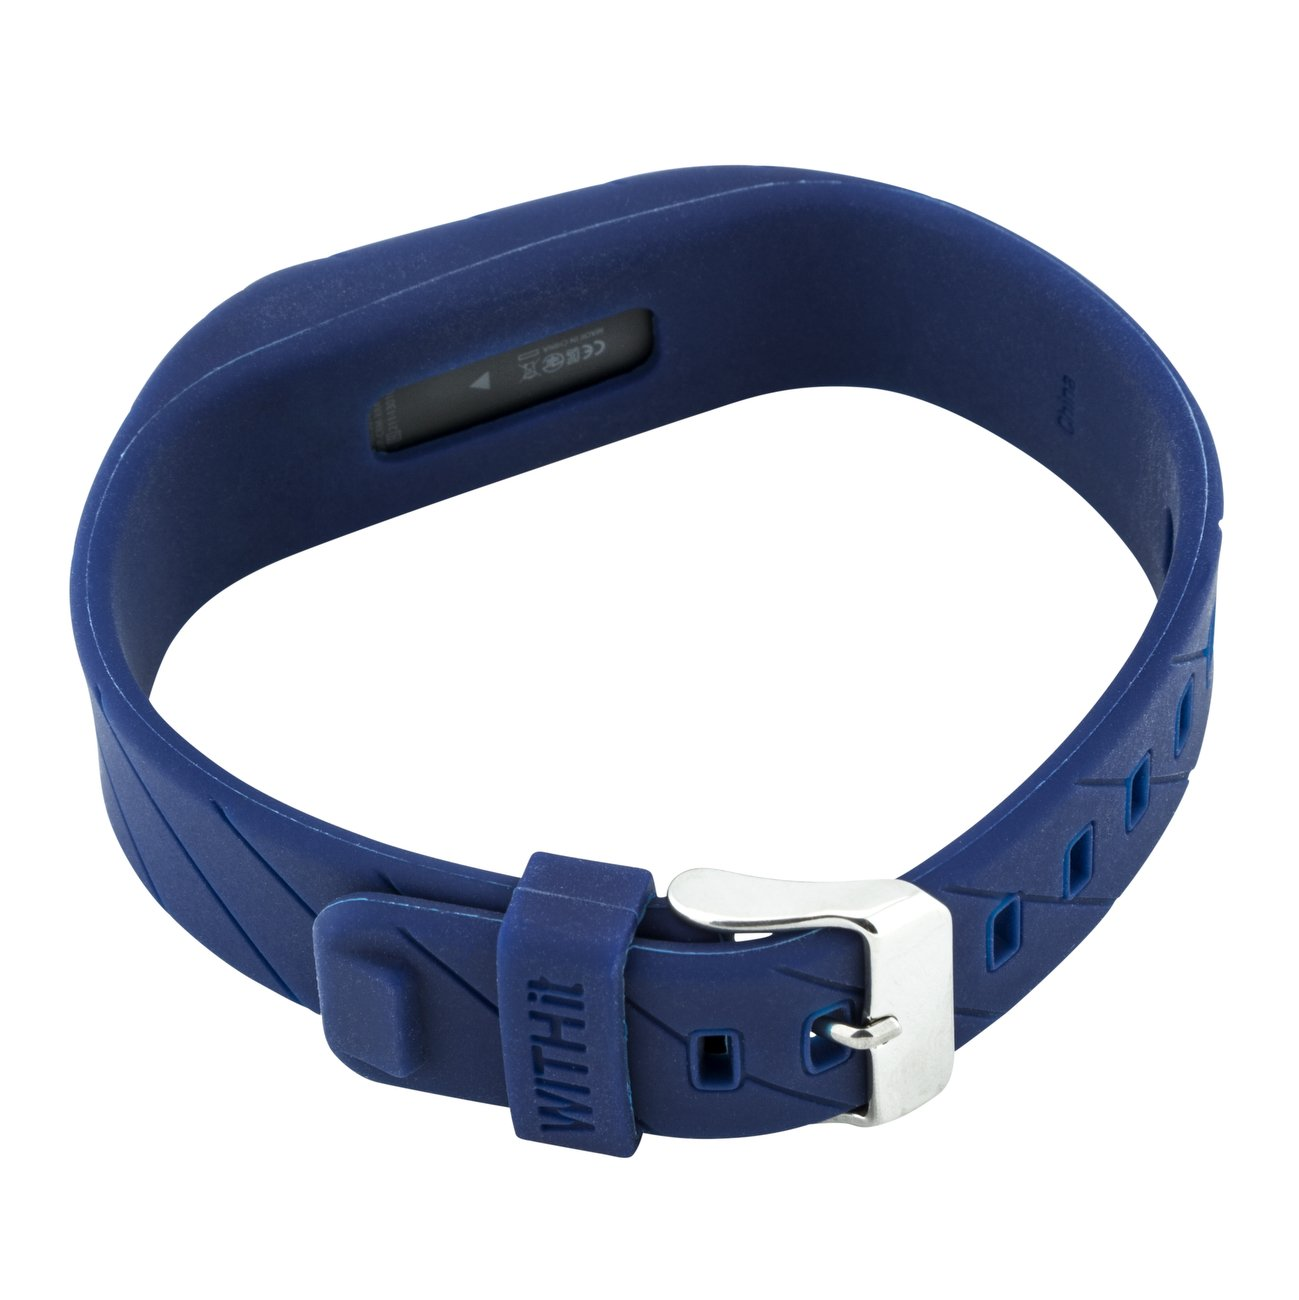 WITHit Fitbit Flex Wristband Replacement Image 3